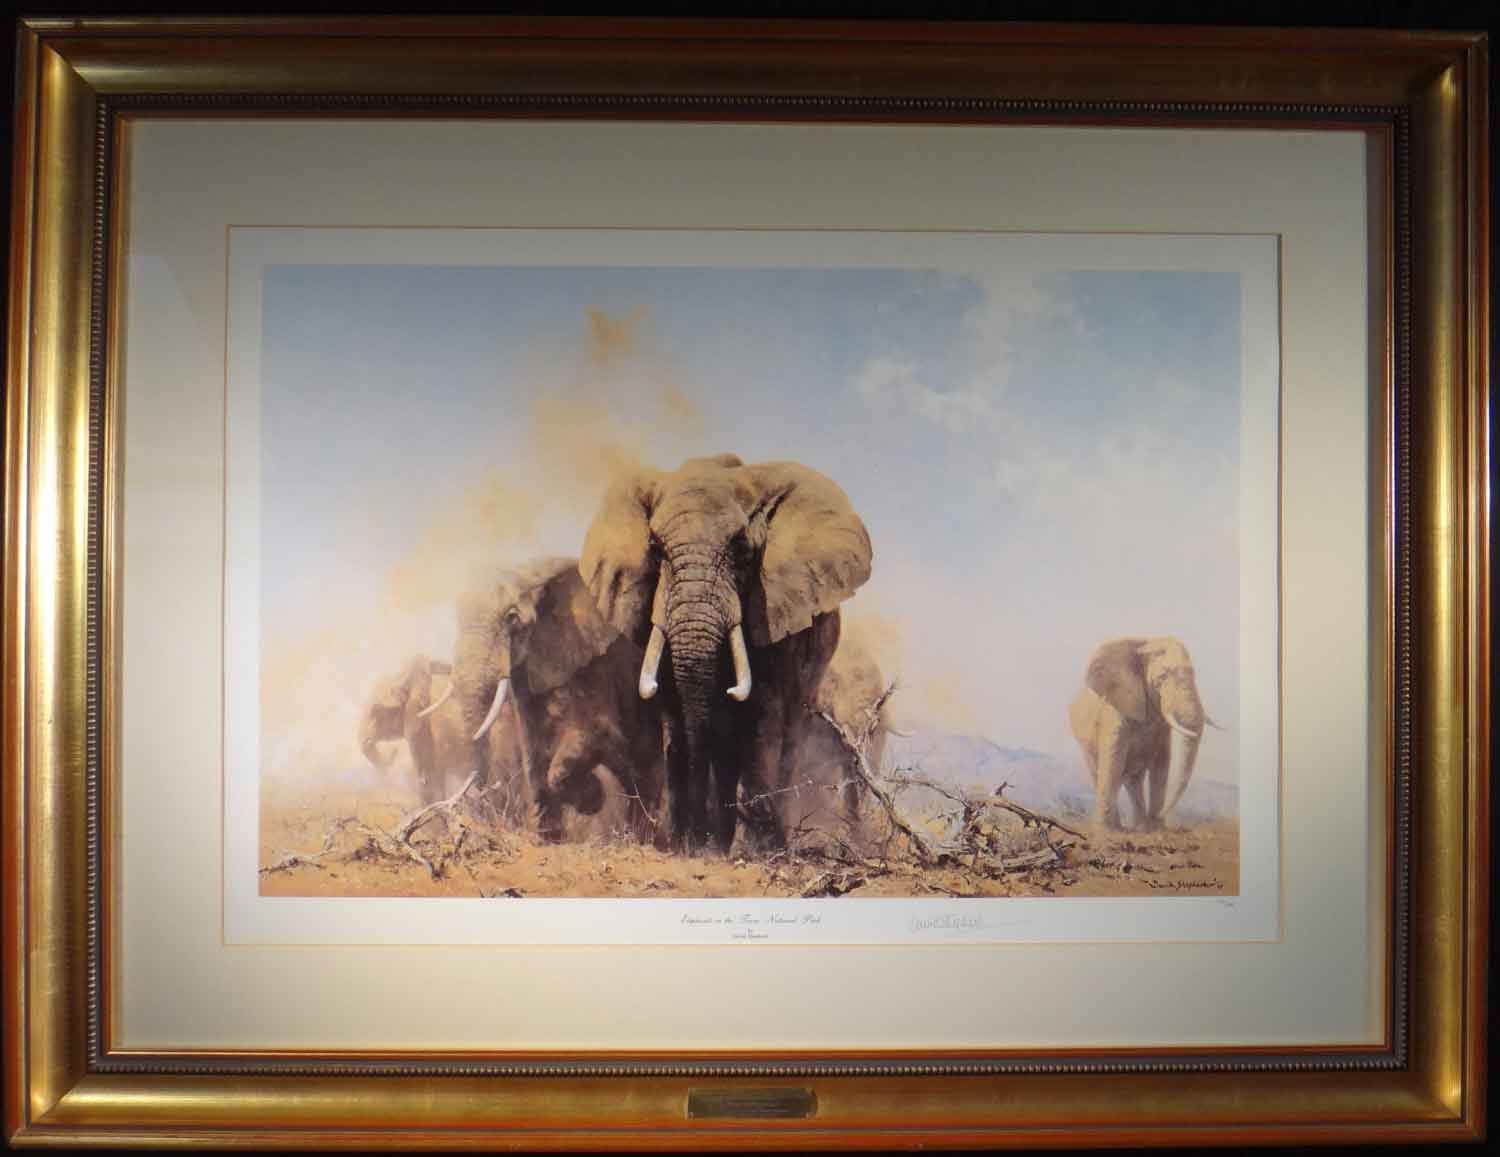 david shepherd, Elephants at Tsavo National Park